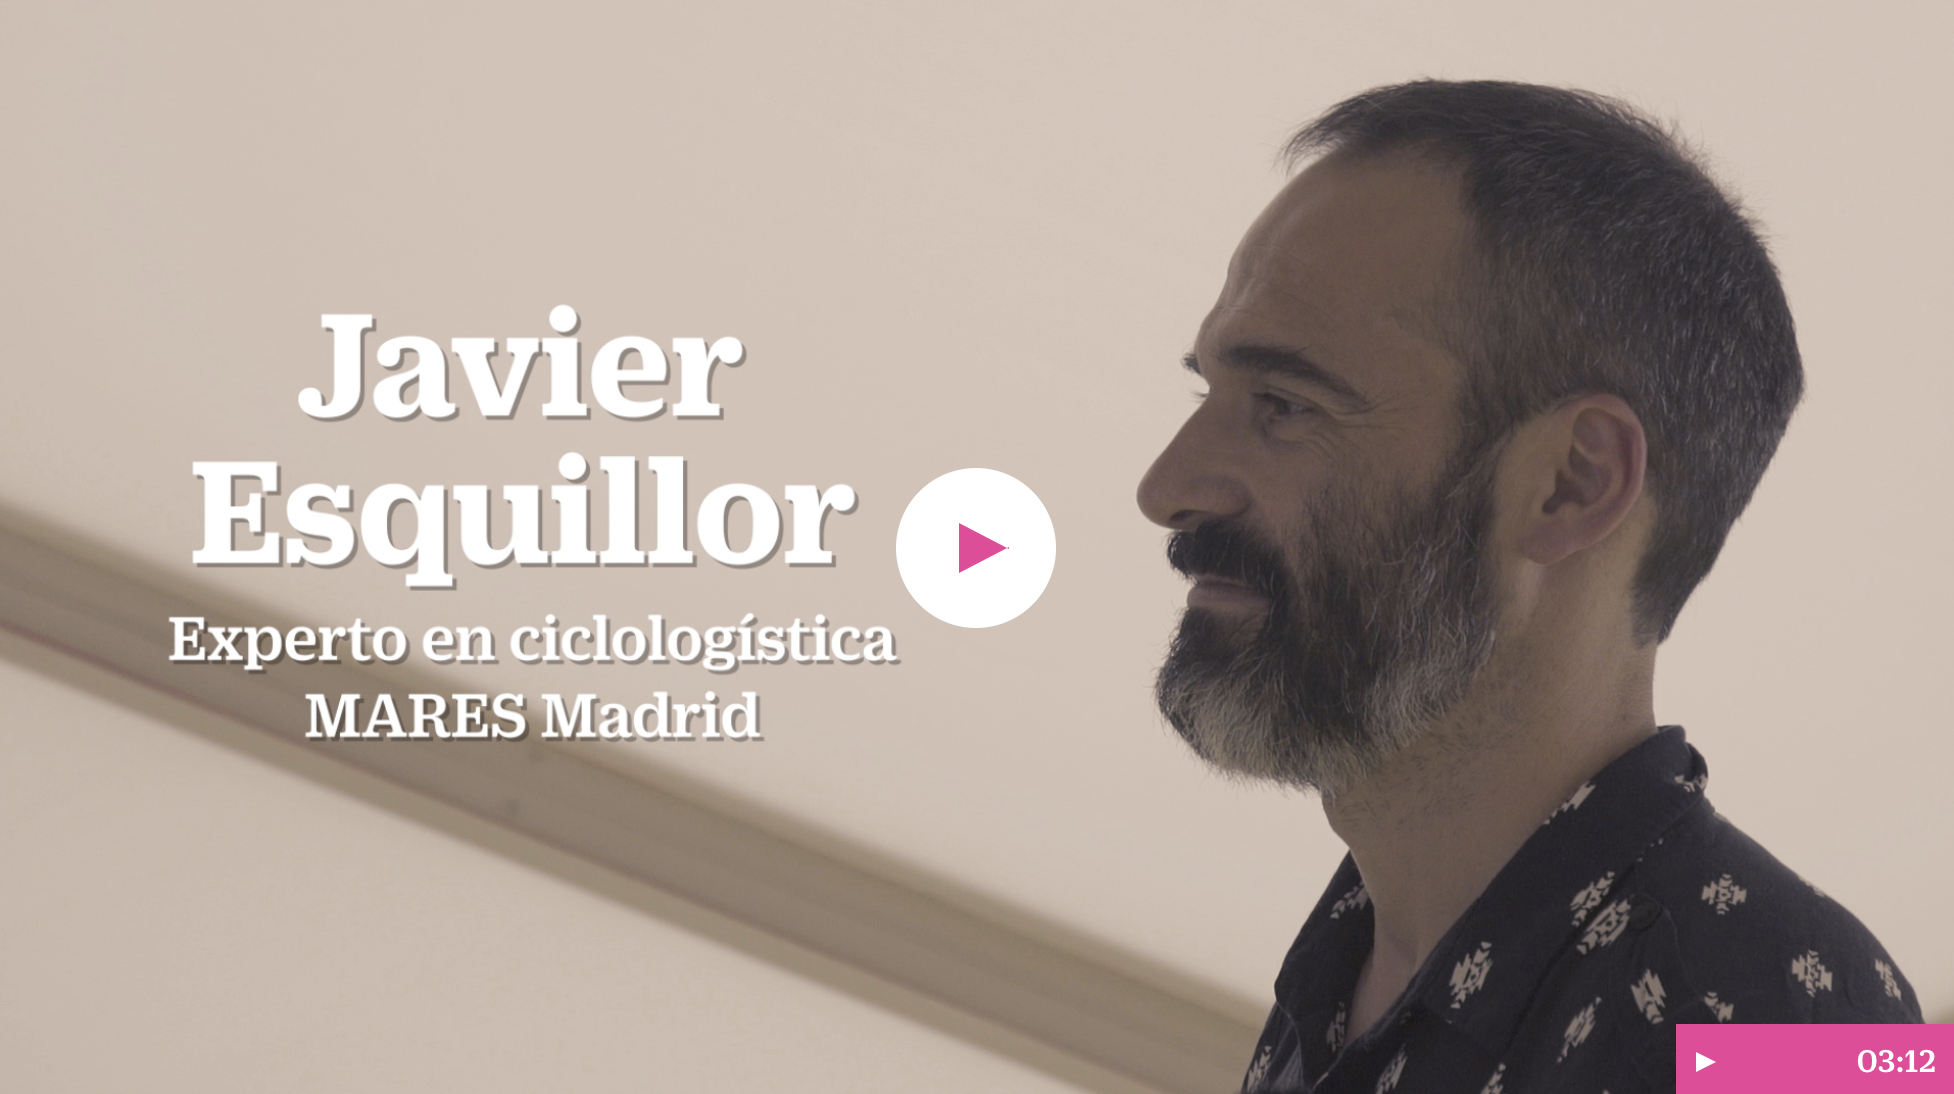 13-Javier Esquillor.png